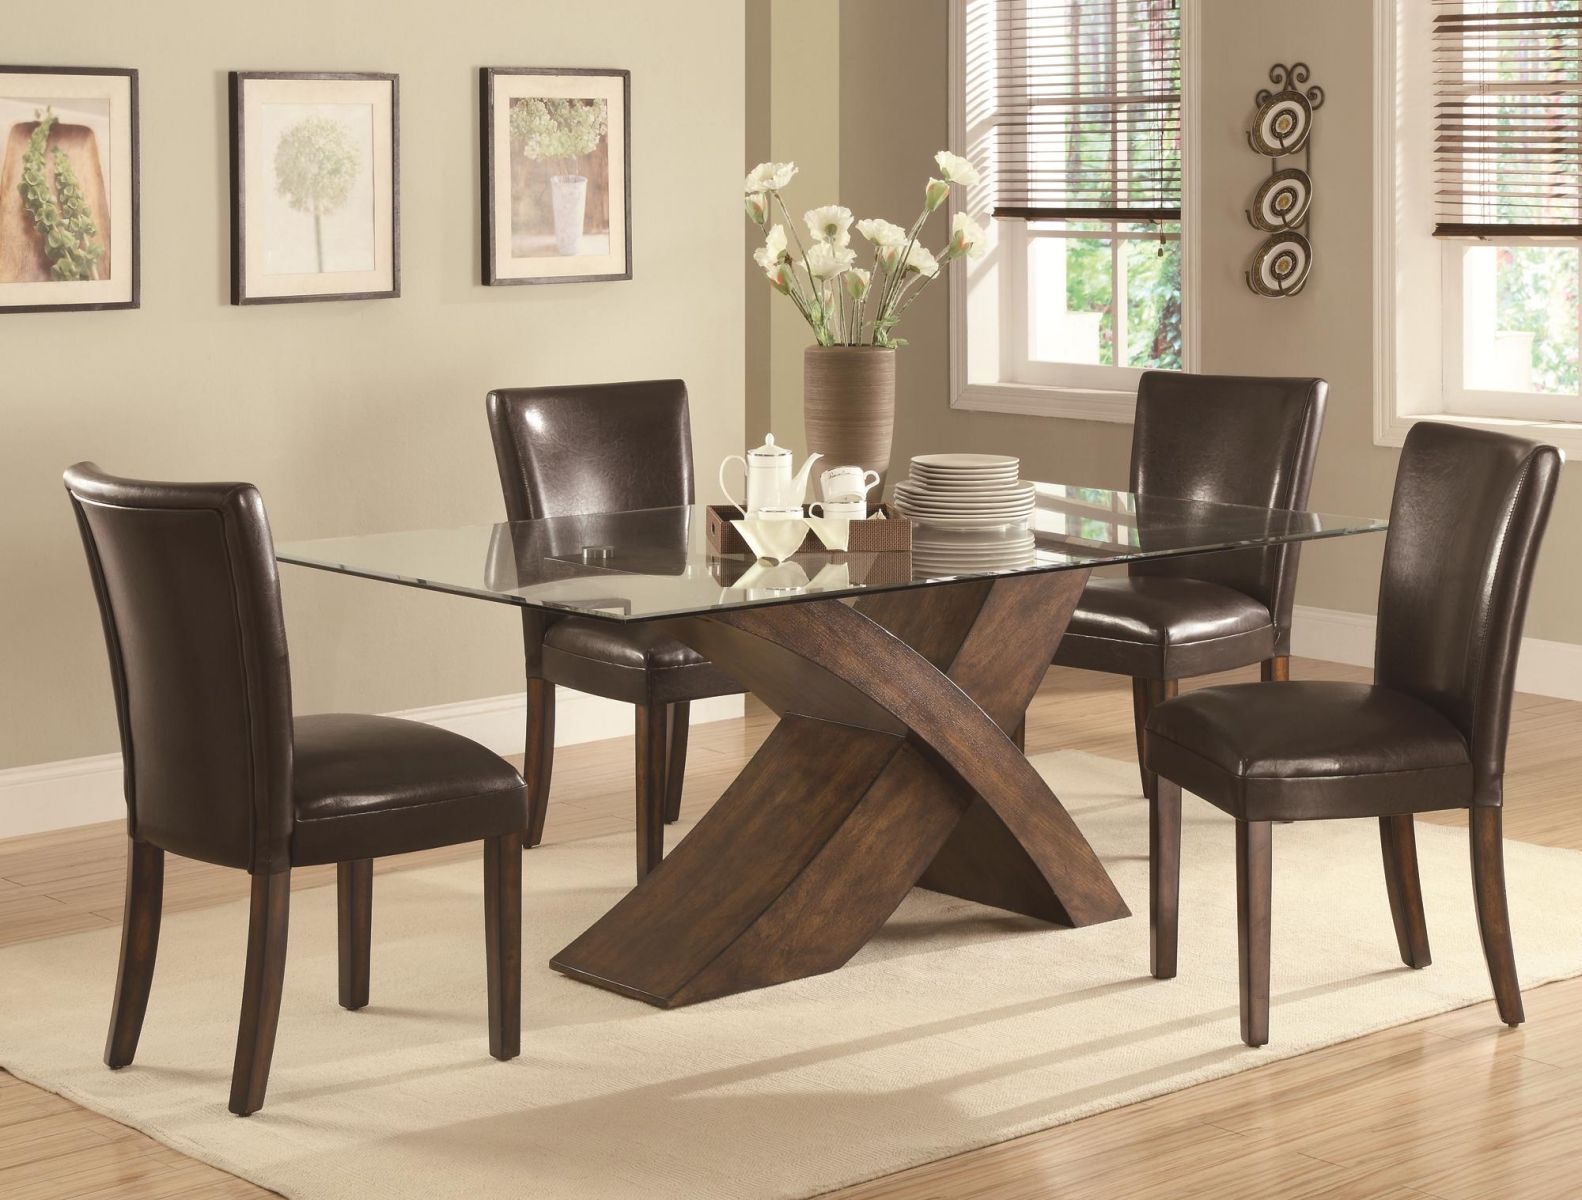 Unique Dinette Long Island New York  Coaster Dining Room Set Adorable Dining Room Suit Design Decoration